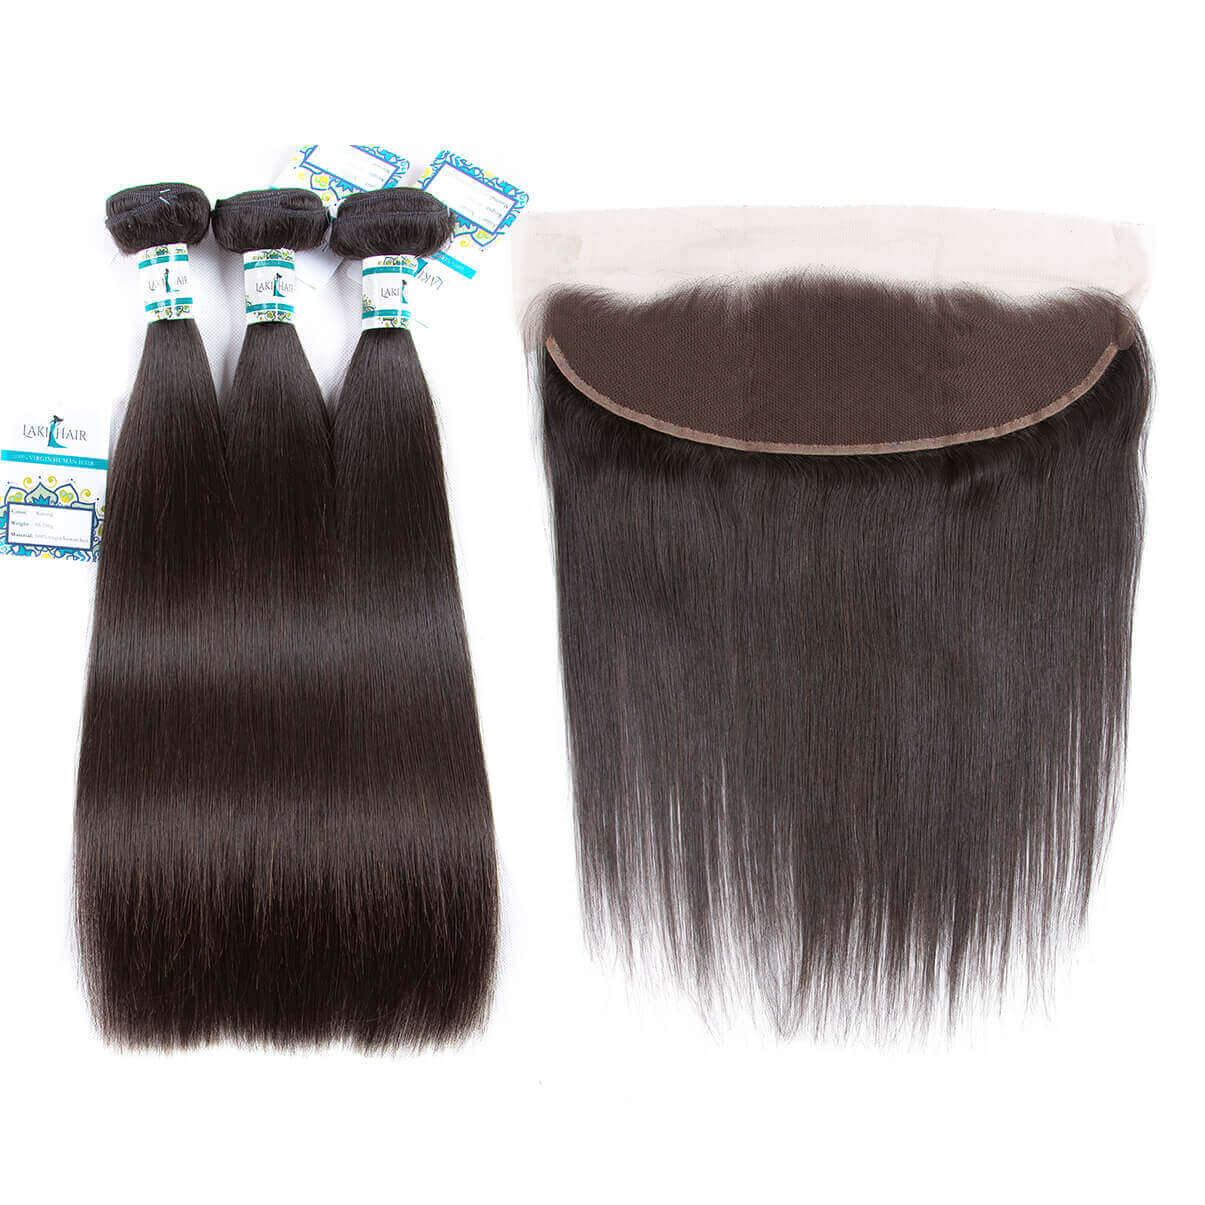 Lakihair 8A Brazilian Virgin Human Hair Straight Hair 3 Bundles With 13x4 Lace Frontal Closure